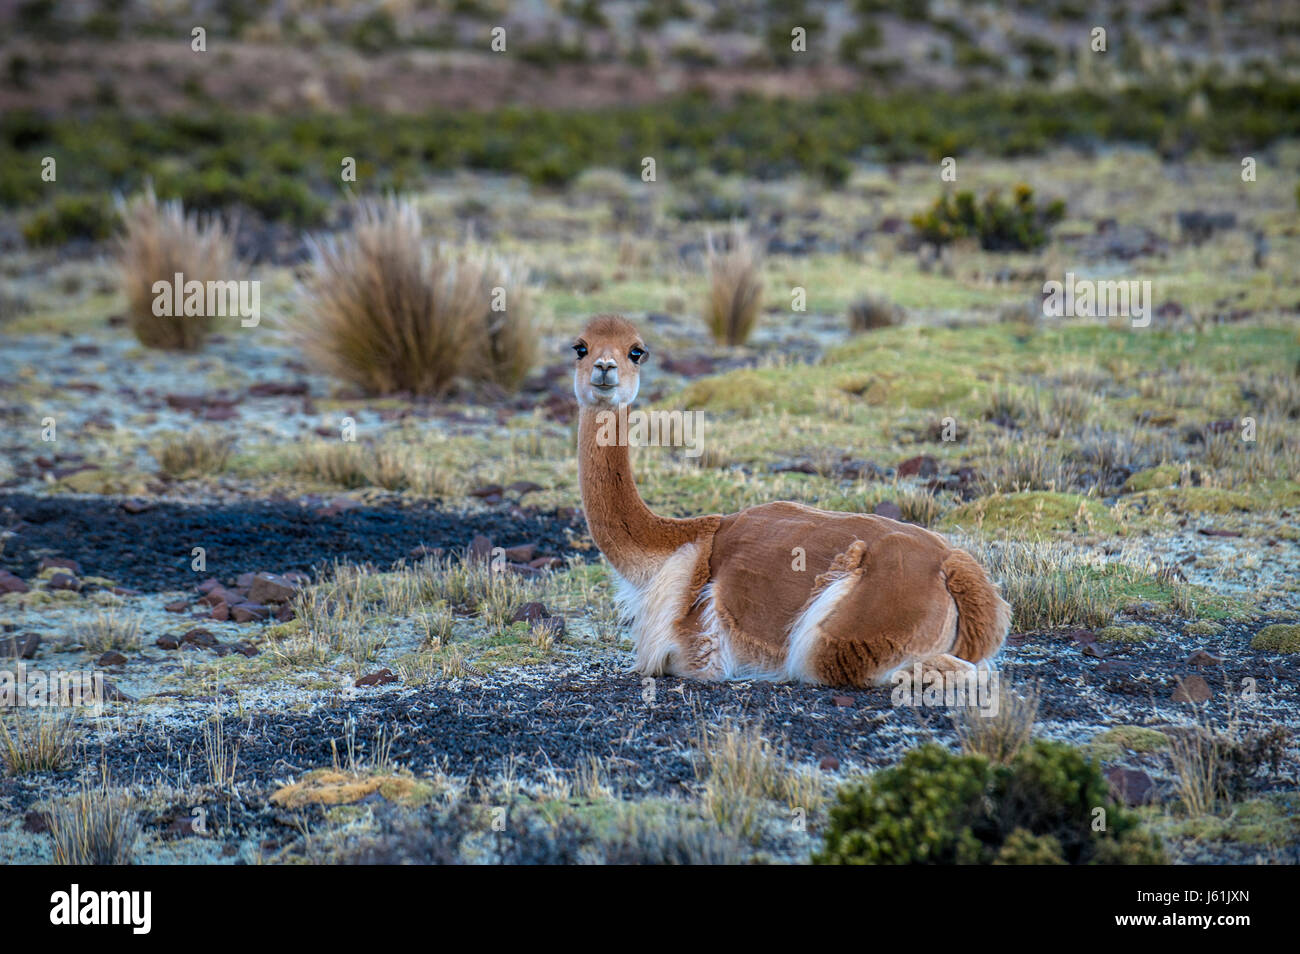 Cheerful adorable Vicugna looking at the camera in Reserva Nacional Pampa Galeras, Peru. Vicugna is a wild South - Stock Image